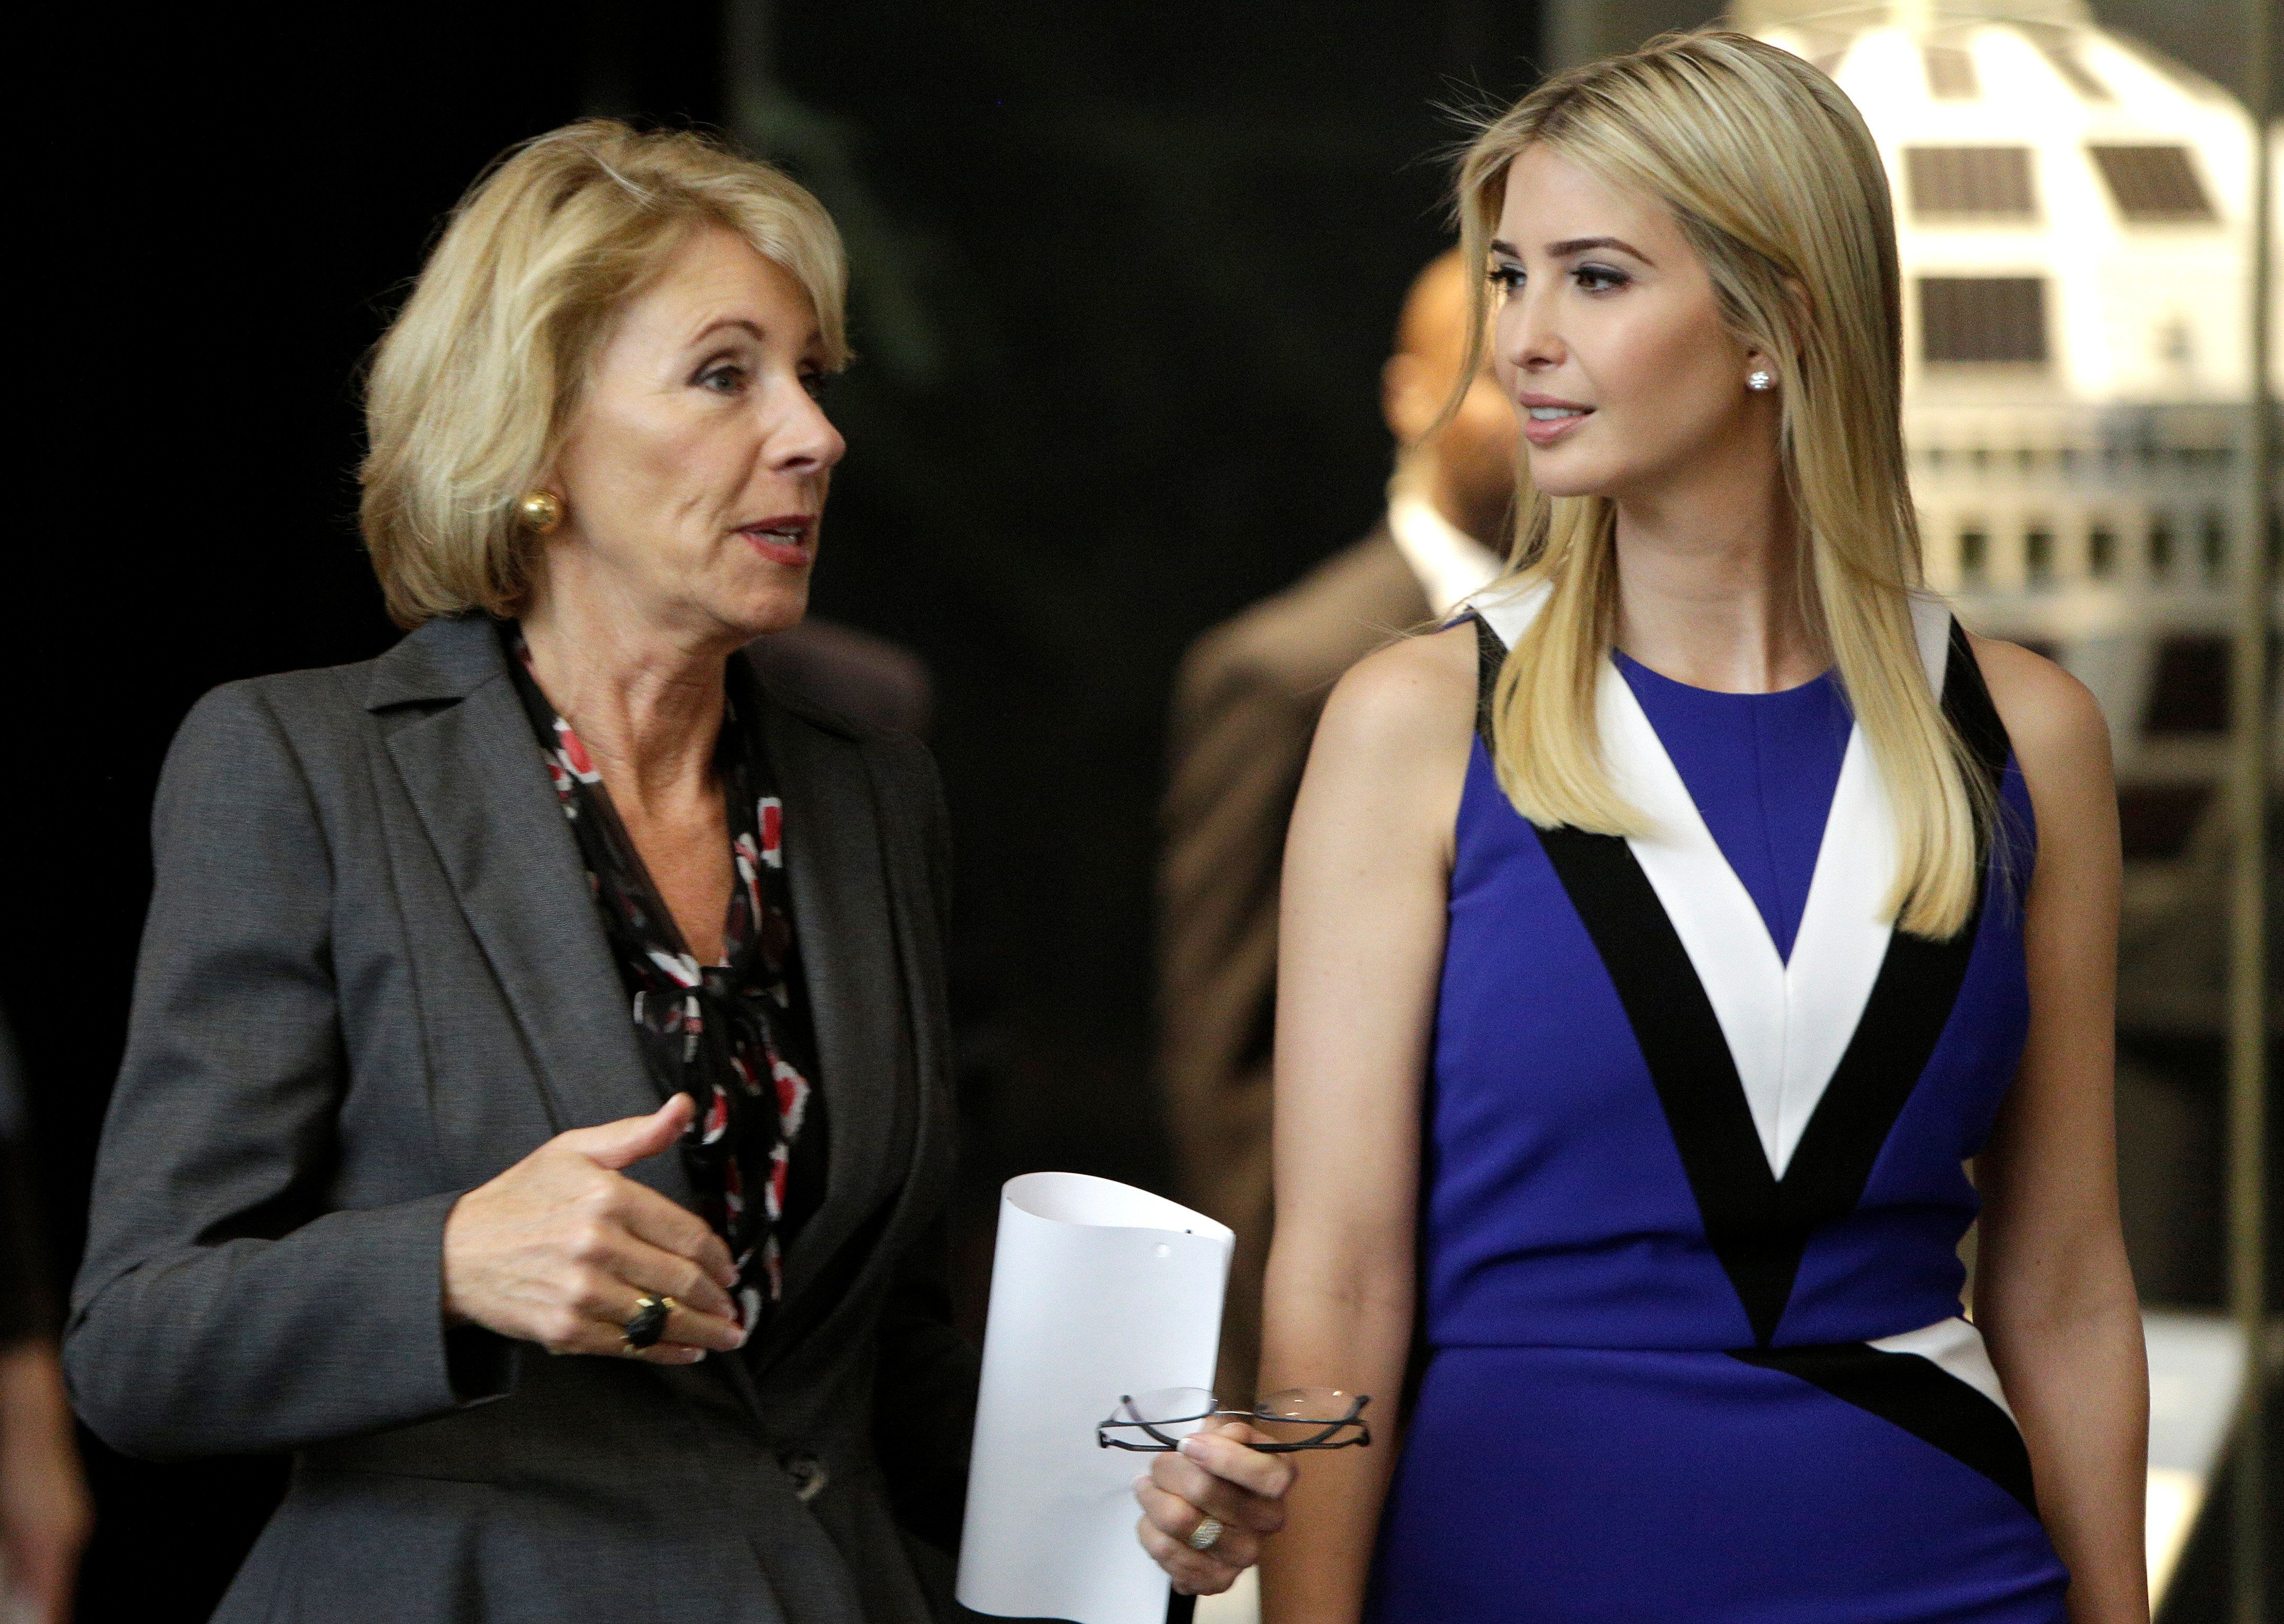 U.S. Secretary of Education Betsy DeVos and Ivanka Trump speaks during a visit to the Smithsonian's National Air and Space Museum in Washington, U.S., March 28, 2017. REUTERS/Joshua Roberts